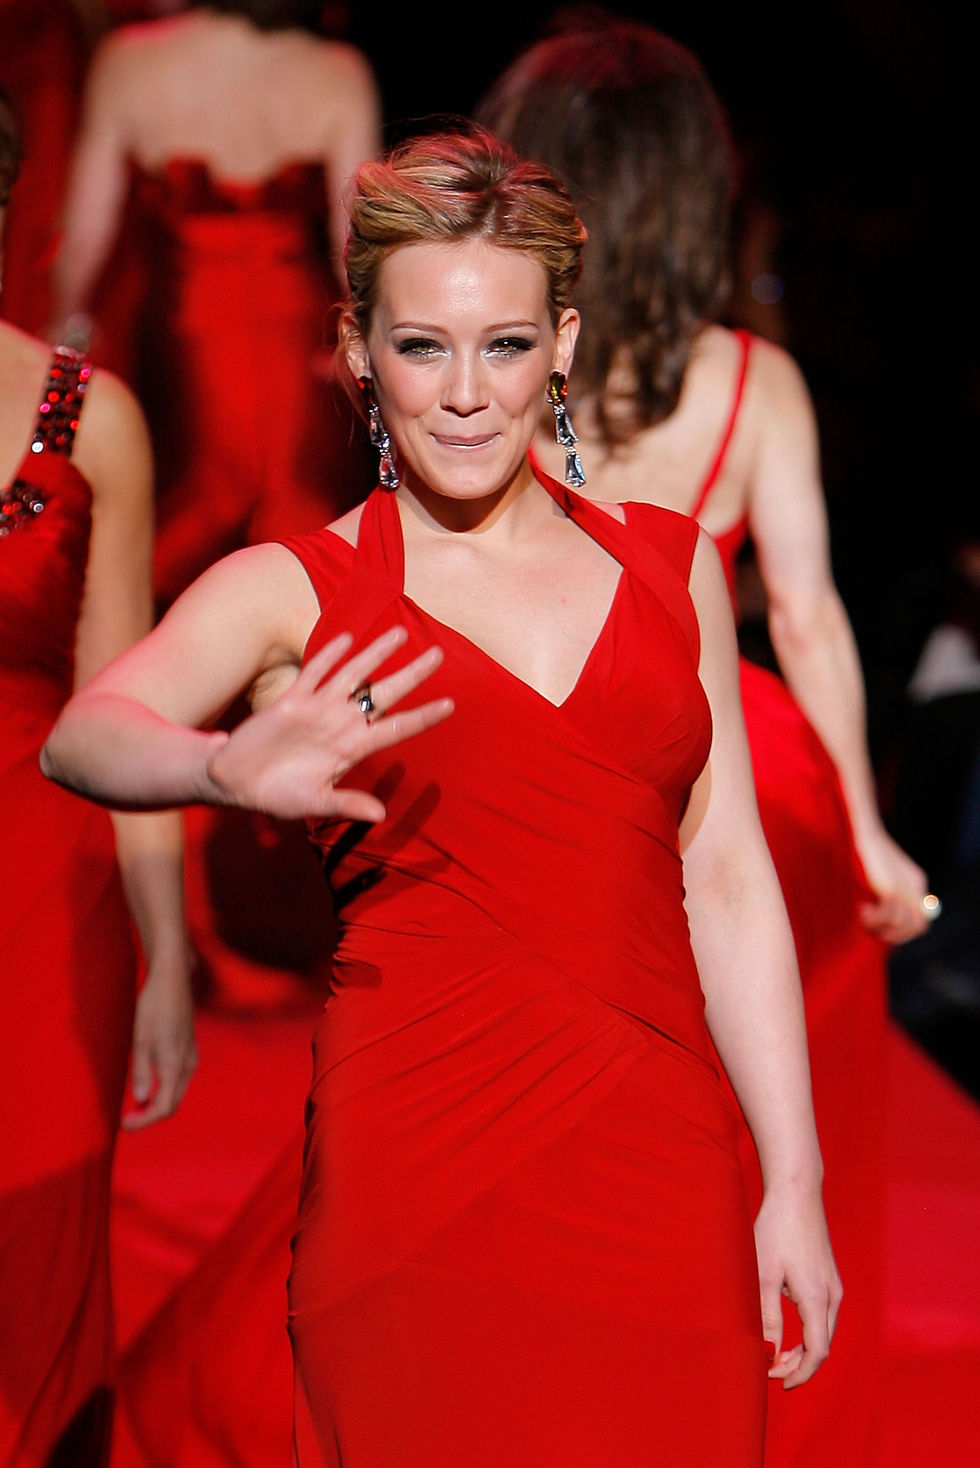 hilary-duff-heart-truth-red-dress-collection-2009-fashion-show-01